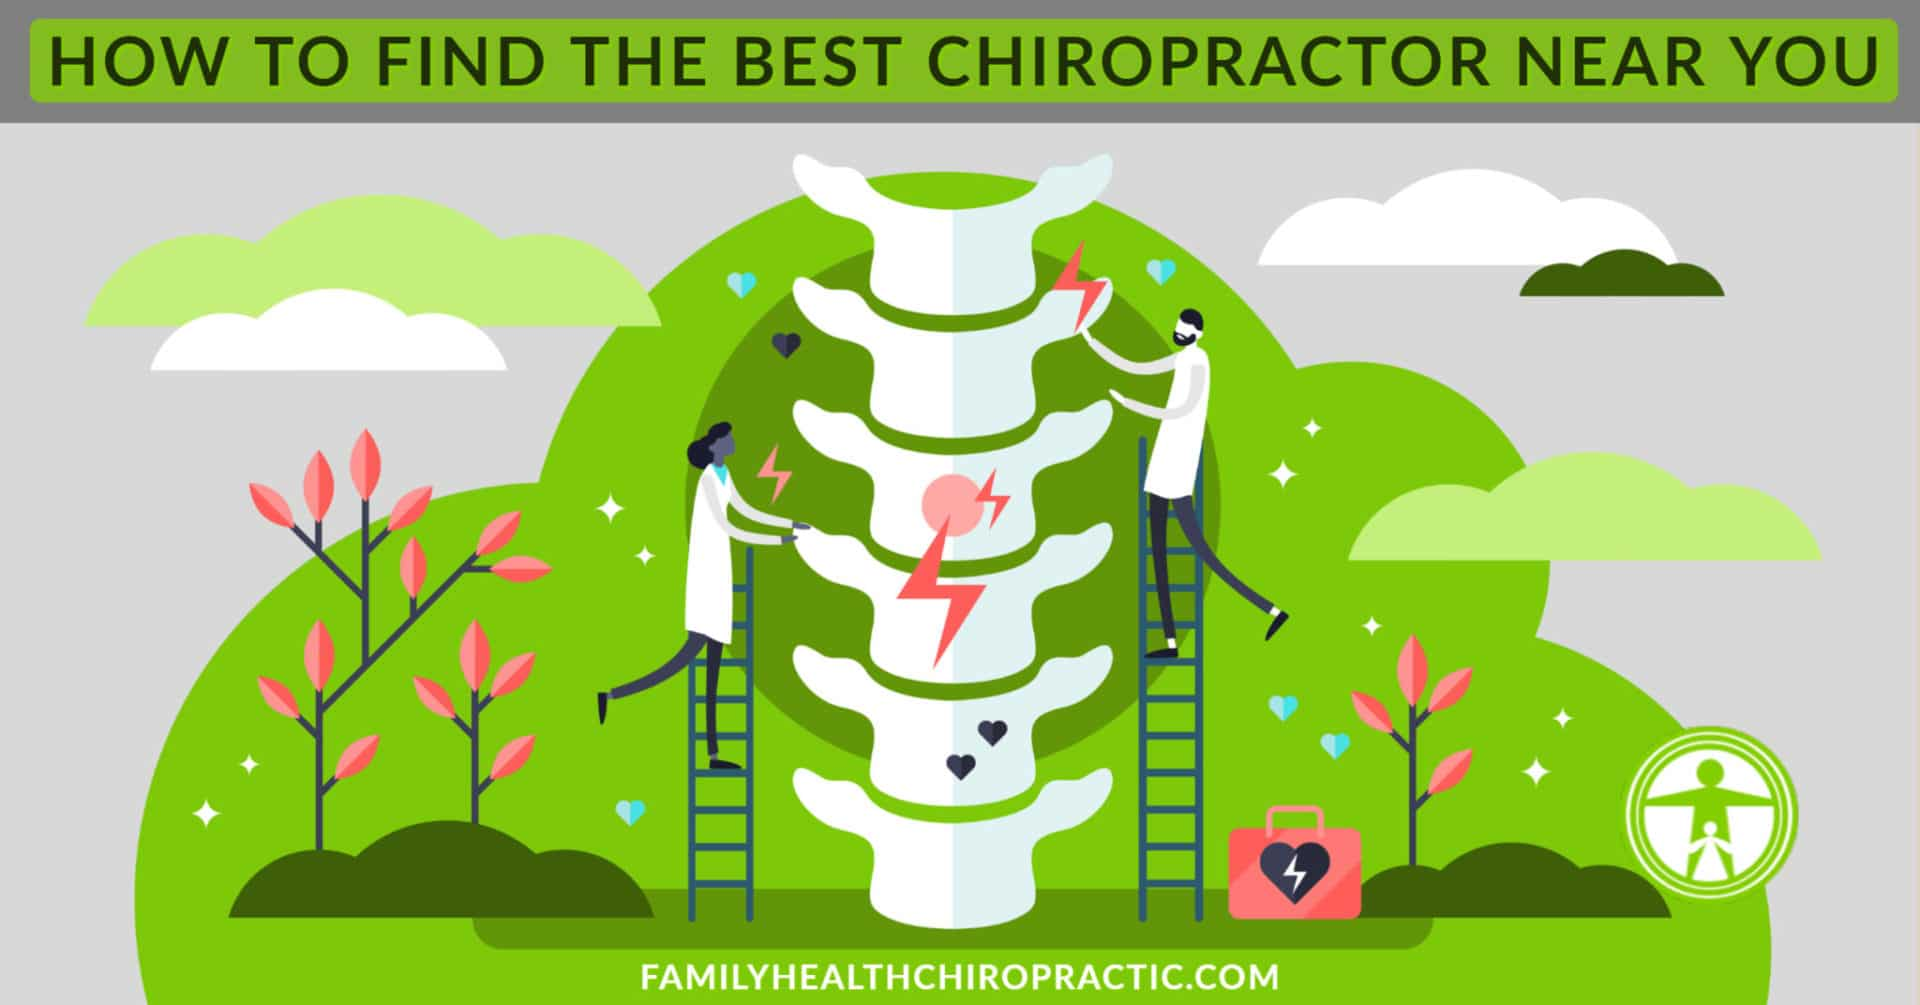 How to Find the Best Chiropractor Near Me